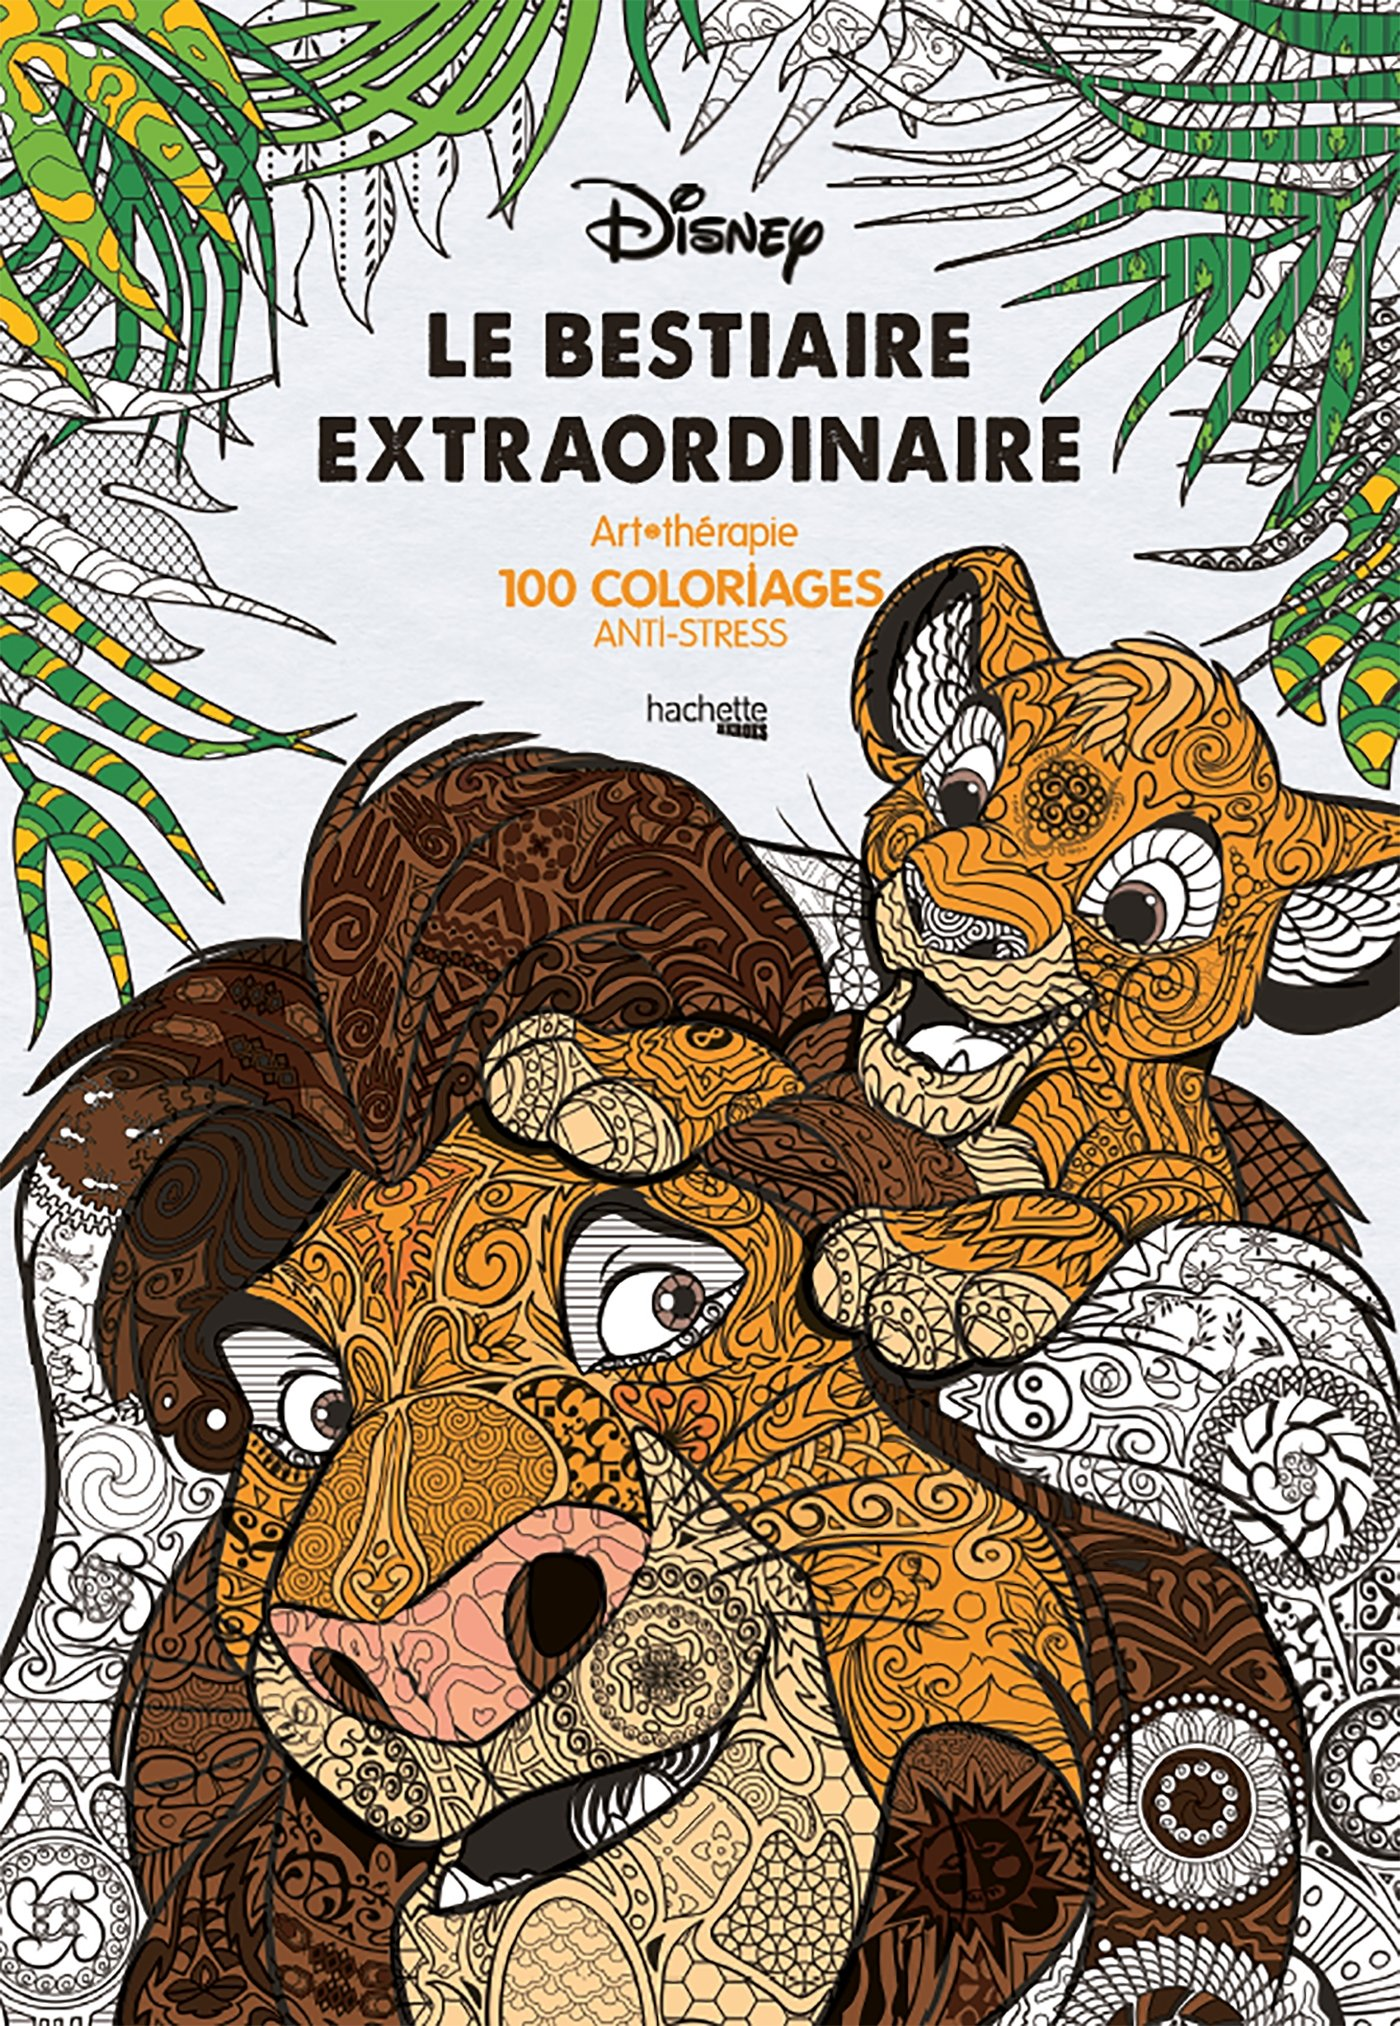 Disney Le Bestiaire Extraordinaire Art Therapie 100